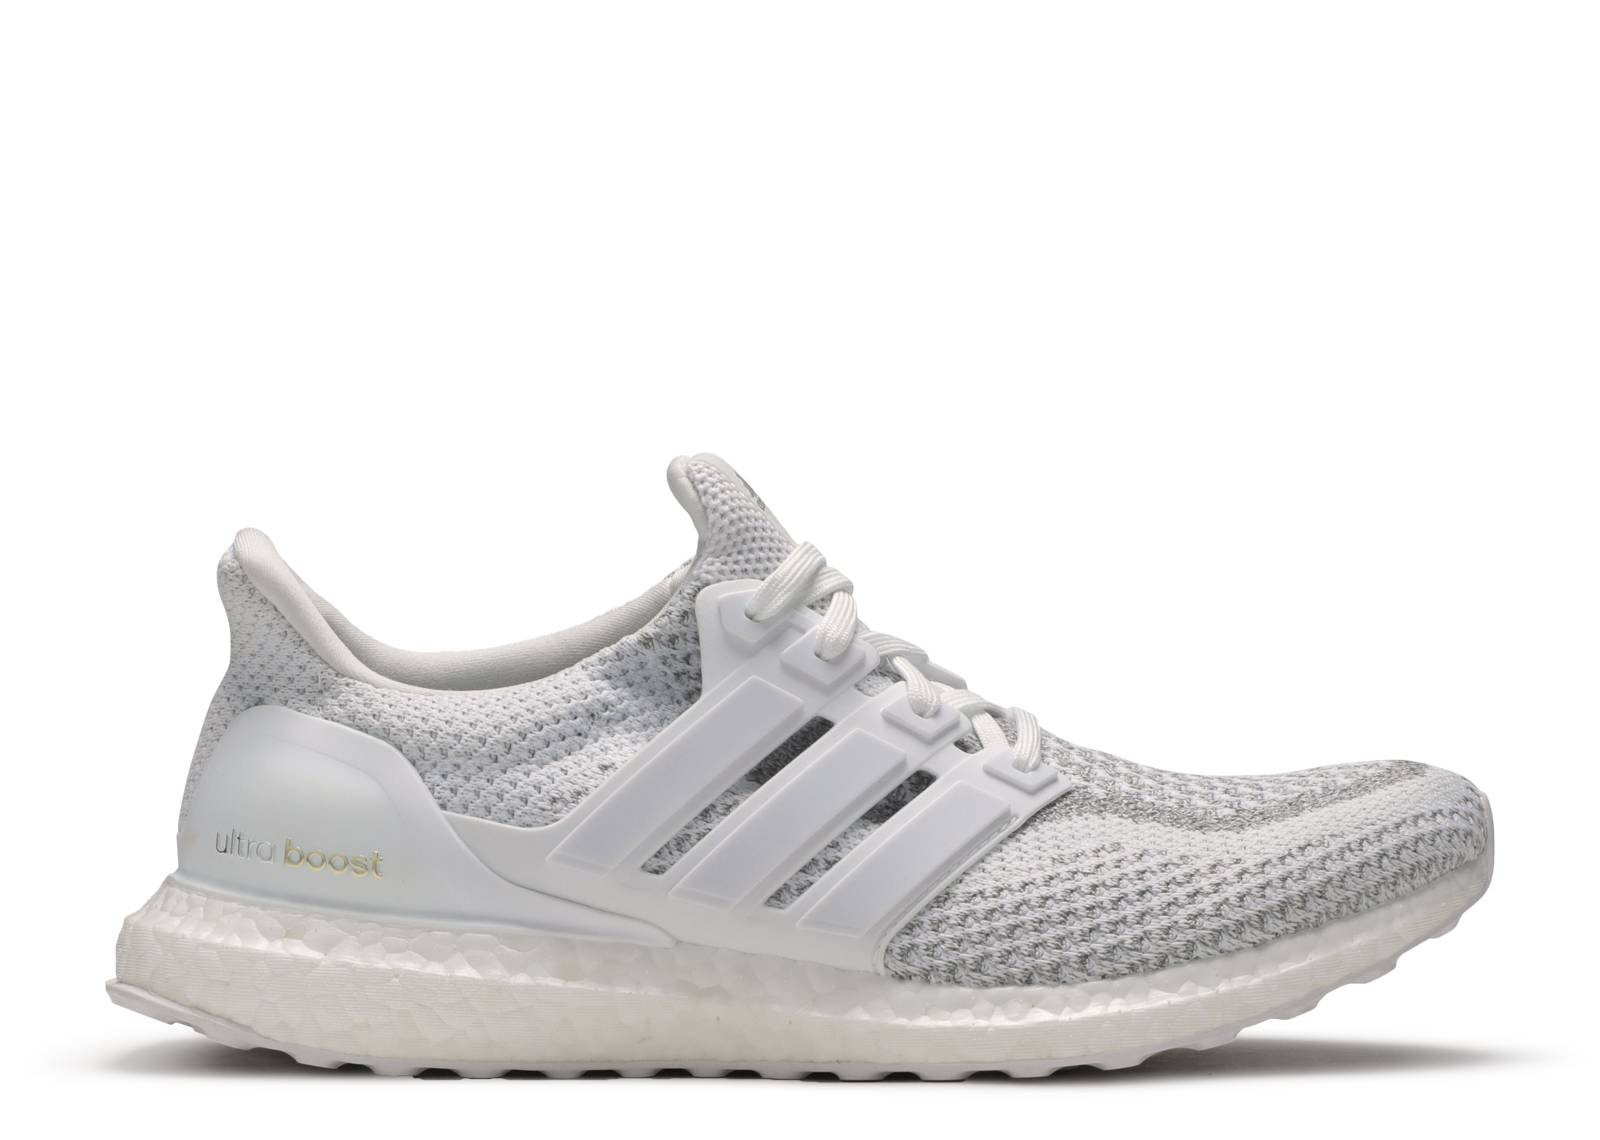 d005b82fa4d5e Ultra Boost Ltd